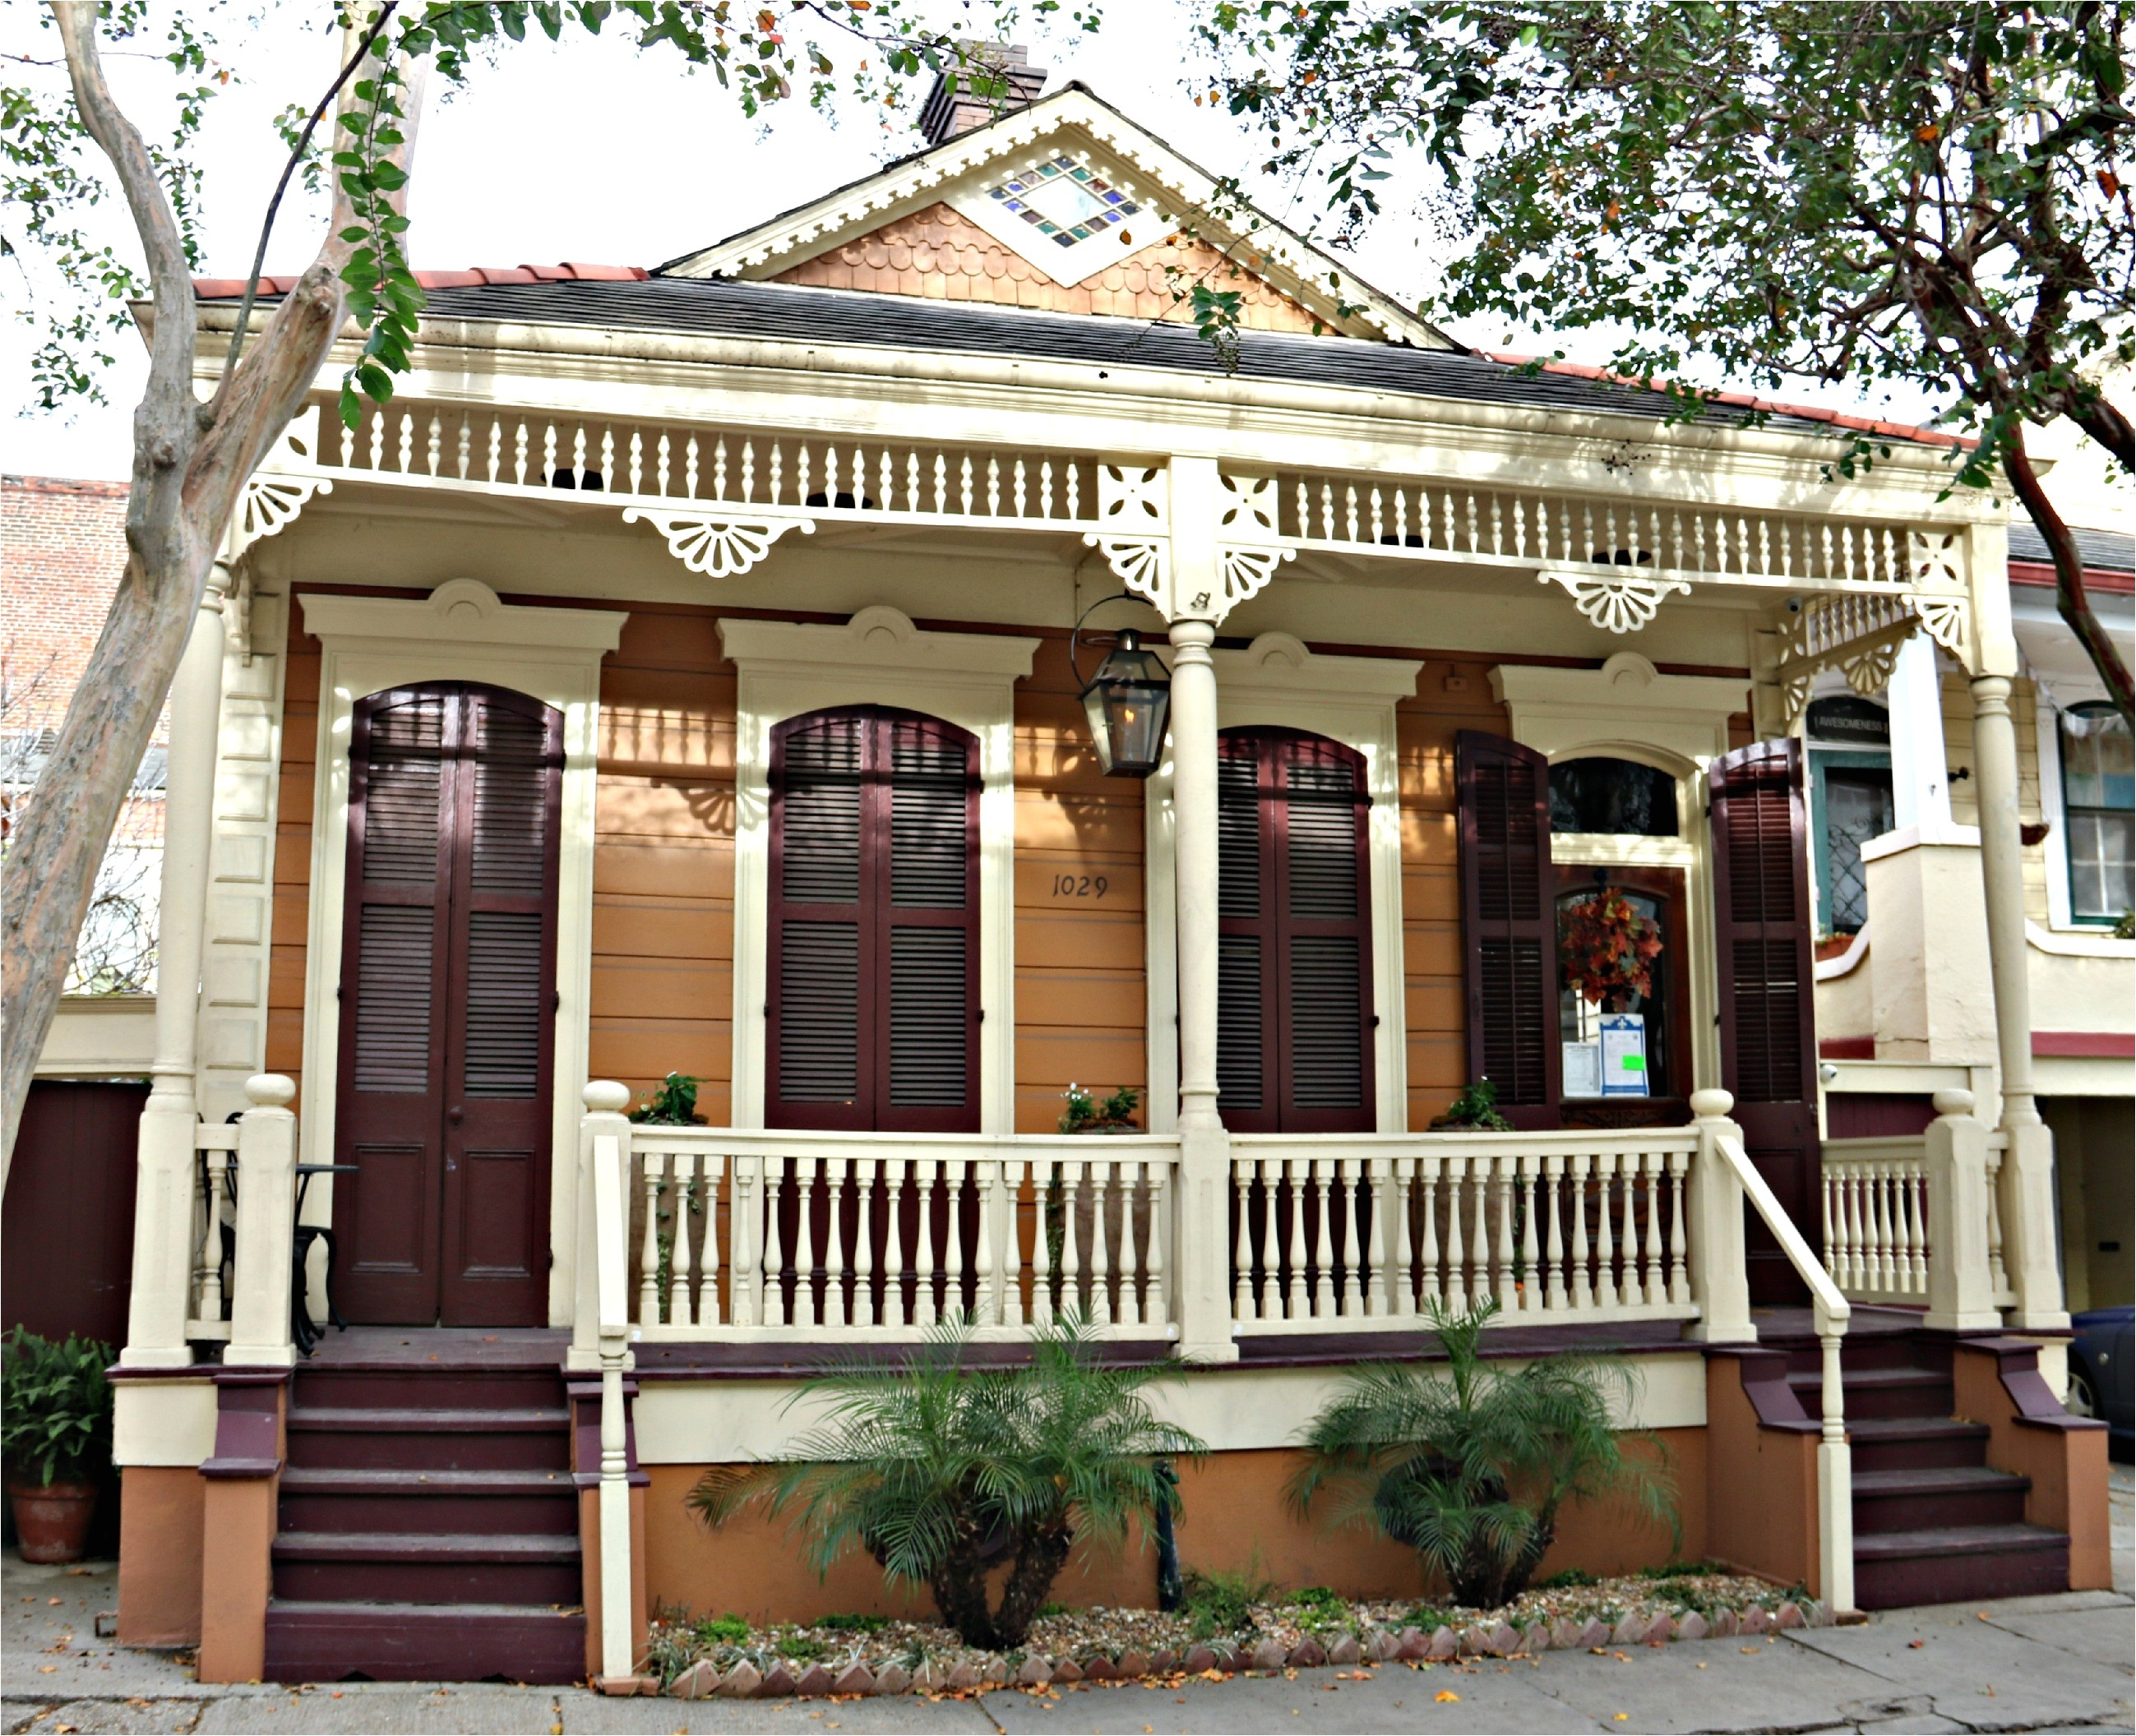 new orleans style house plans elegant new orleans french quarter style house plans varusbattleorleans